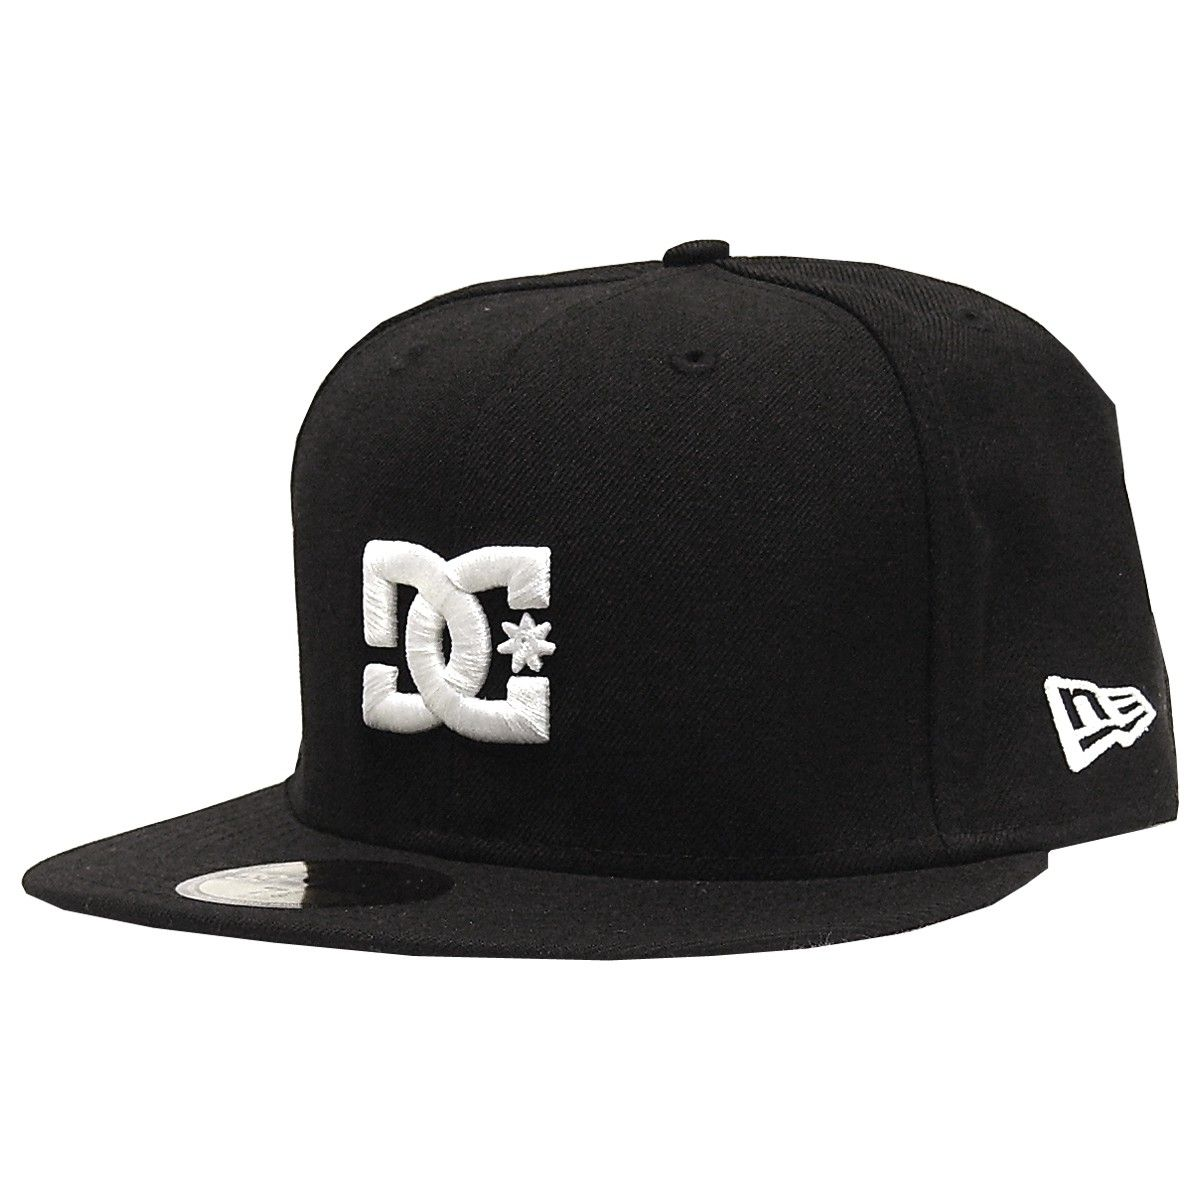 a72ce2c3074 DC Shoes Empire casquette New Era cap black white 40€  newera  59fifty   caps  hats  casquette  cap  hat  dc  dcshoes  skateshop